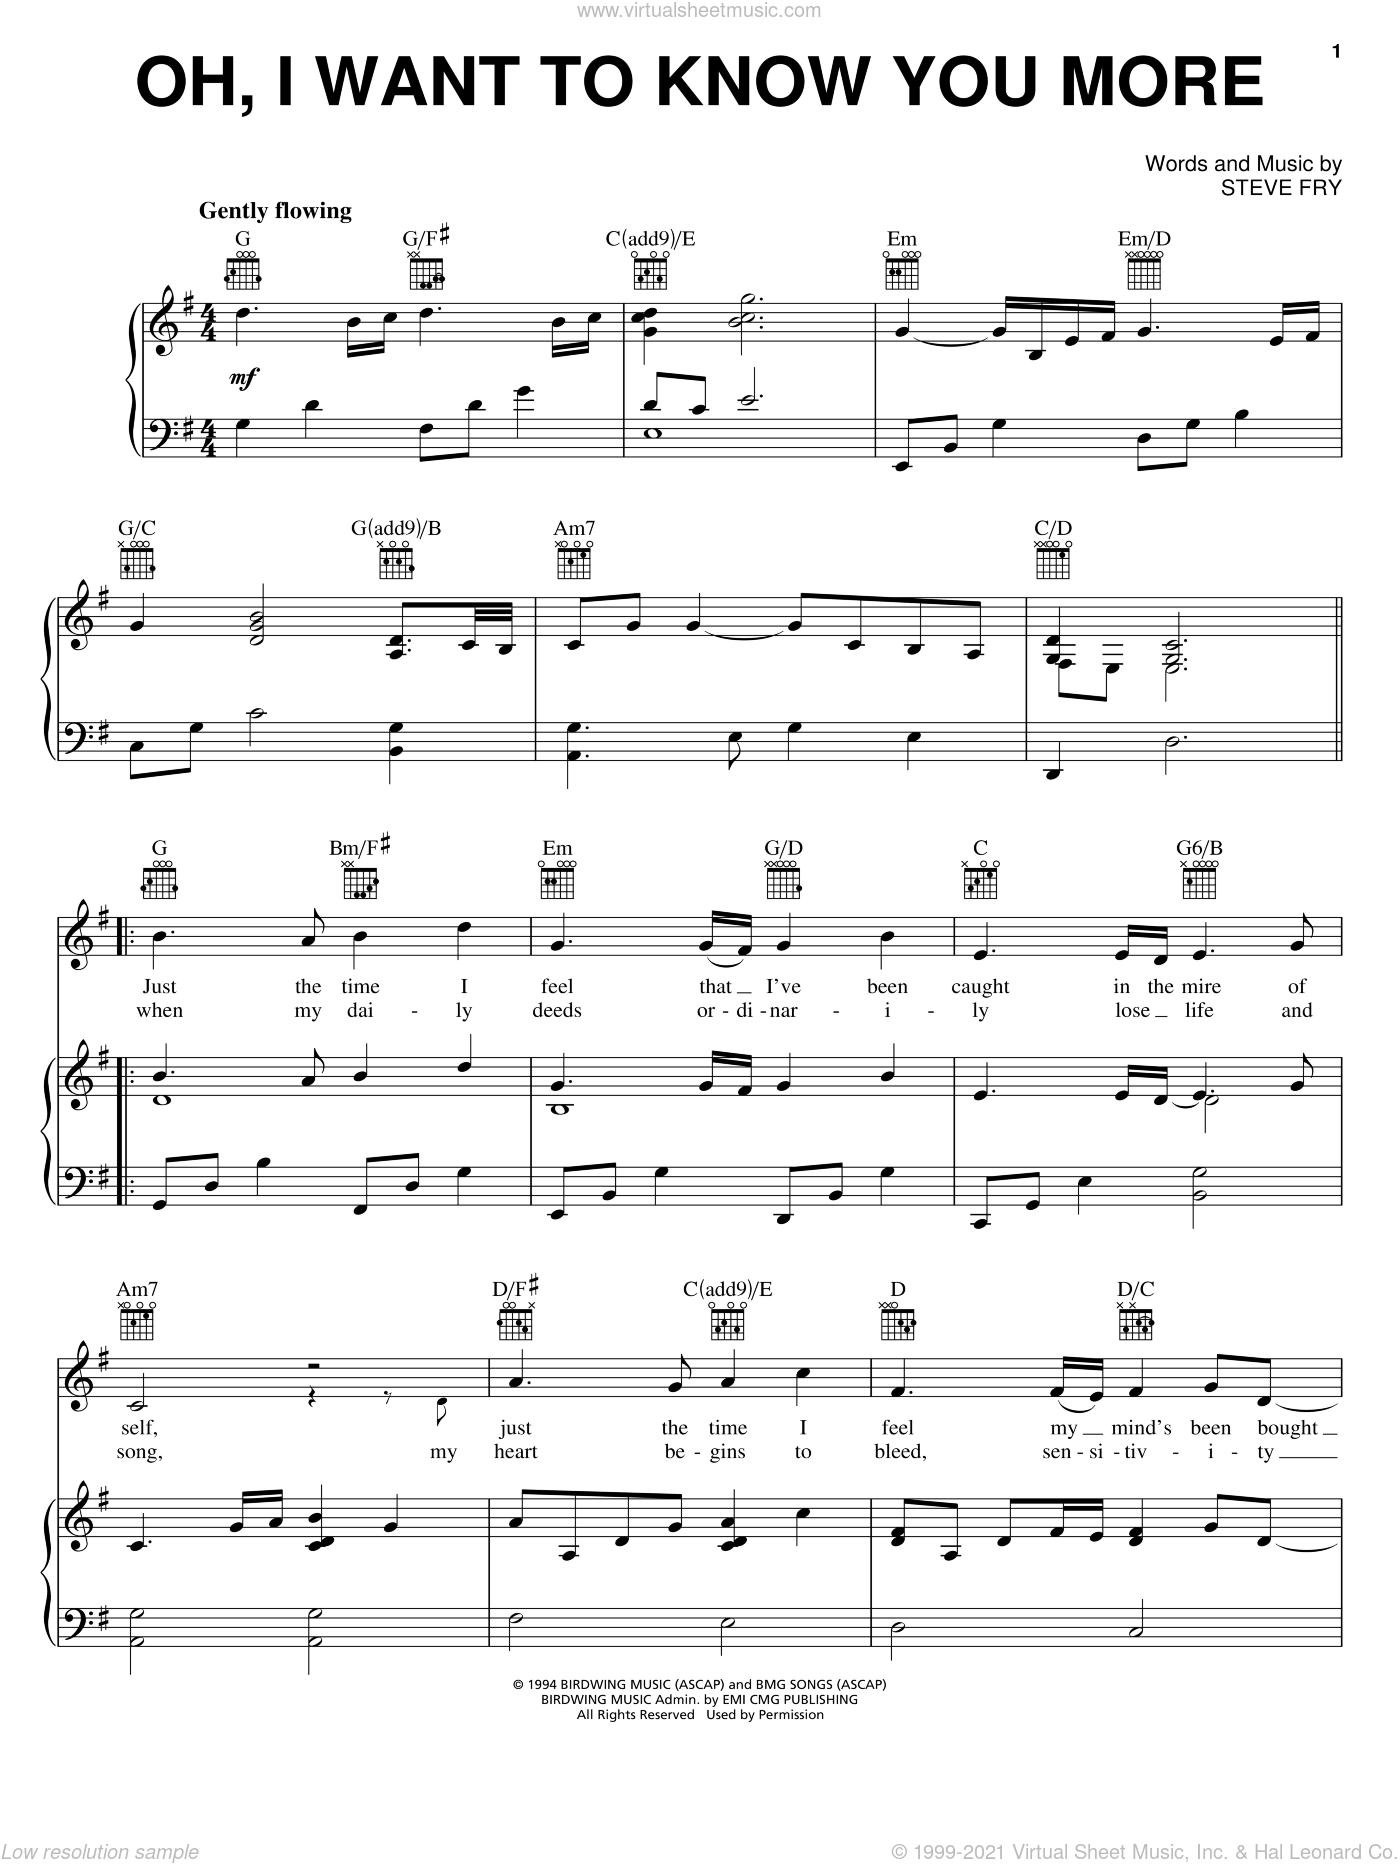 Oh, I Want To Know You More sheet music for voice, piano or guitar by Steve Green, intermediate voice, piano or guitar. Score Image Preview.